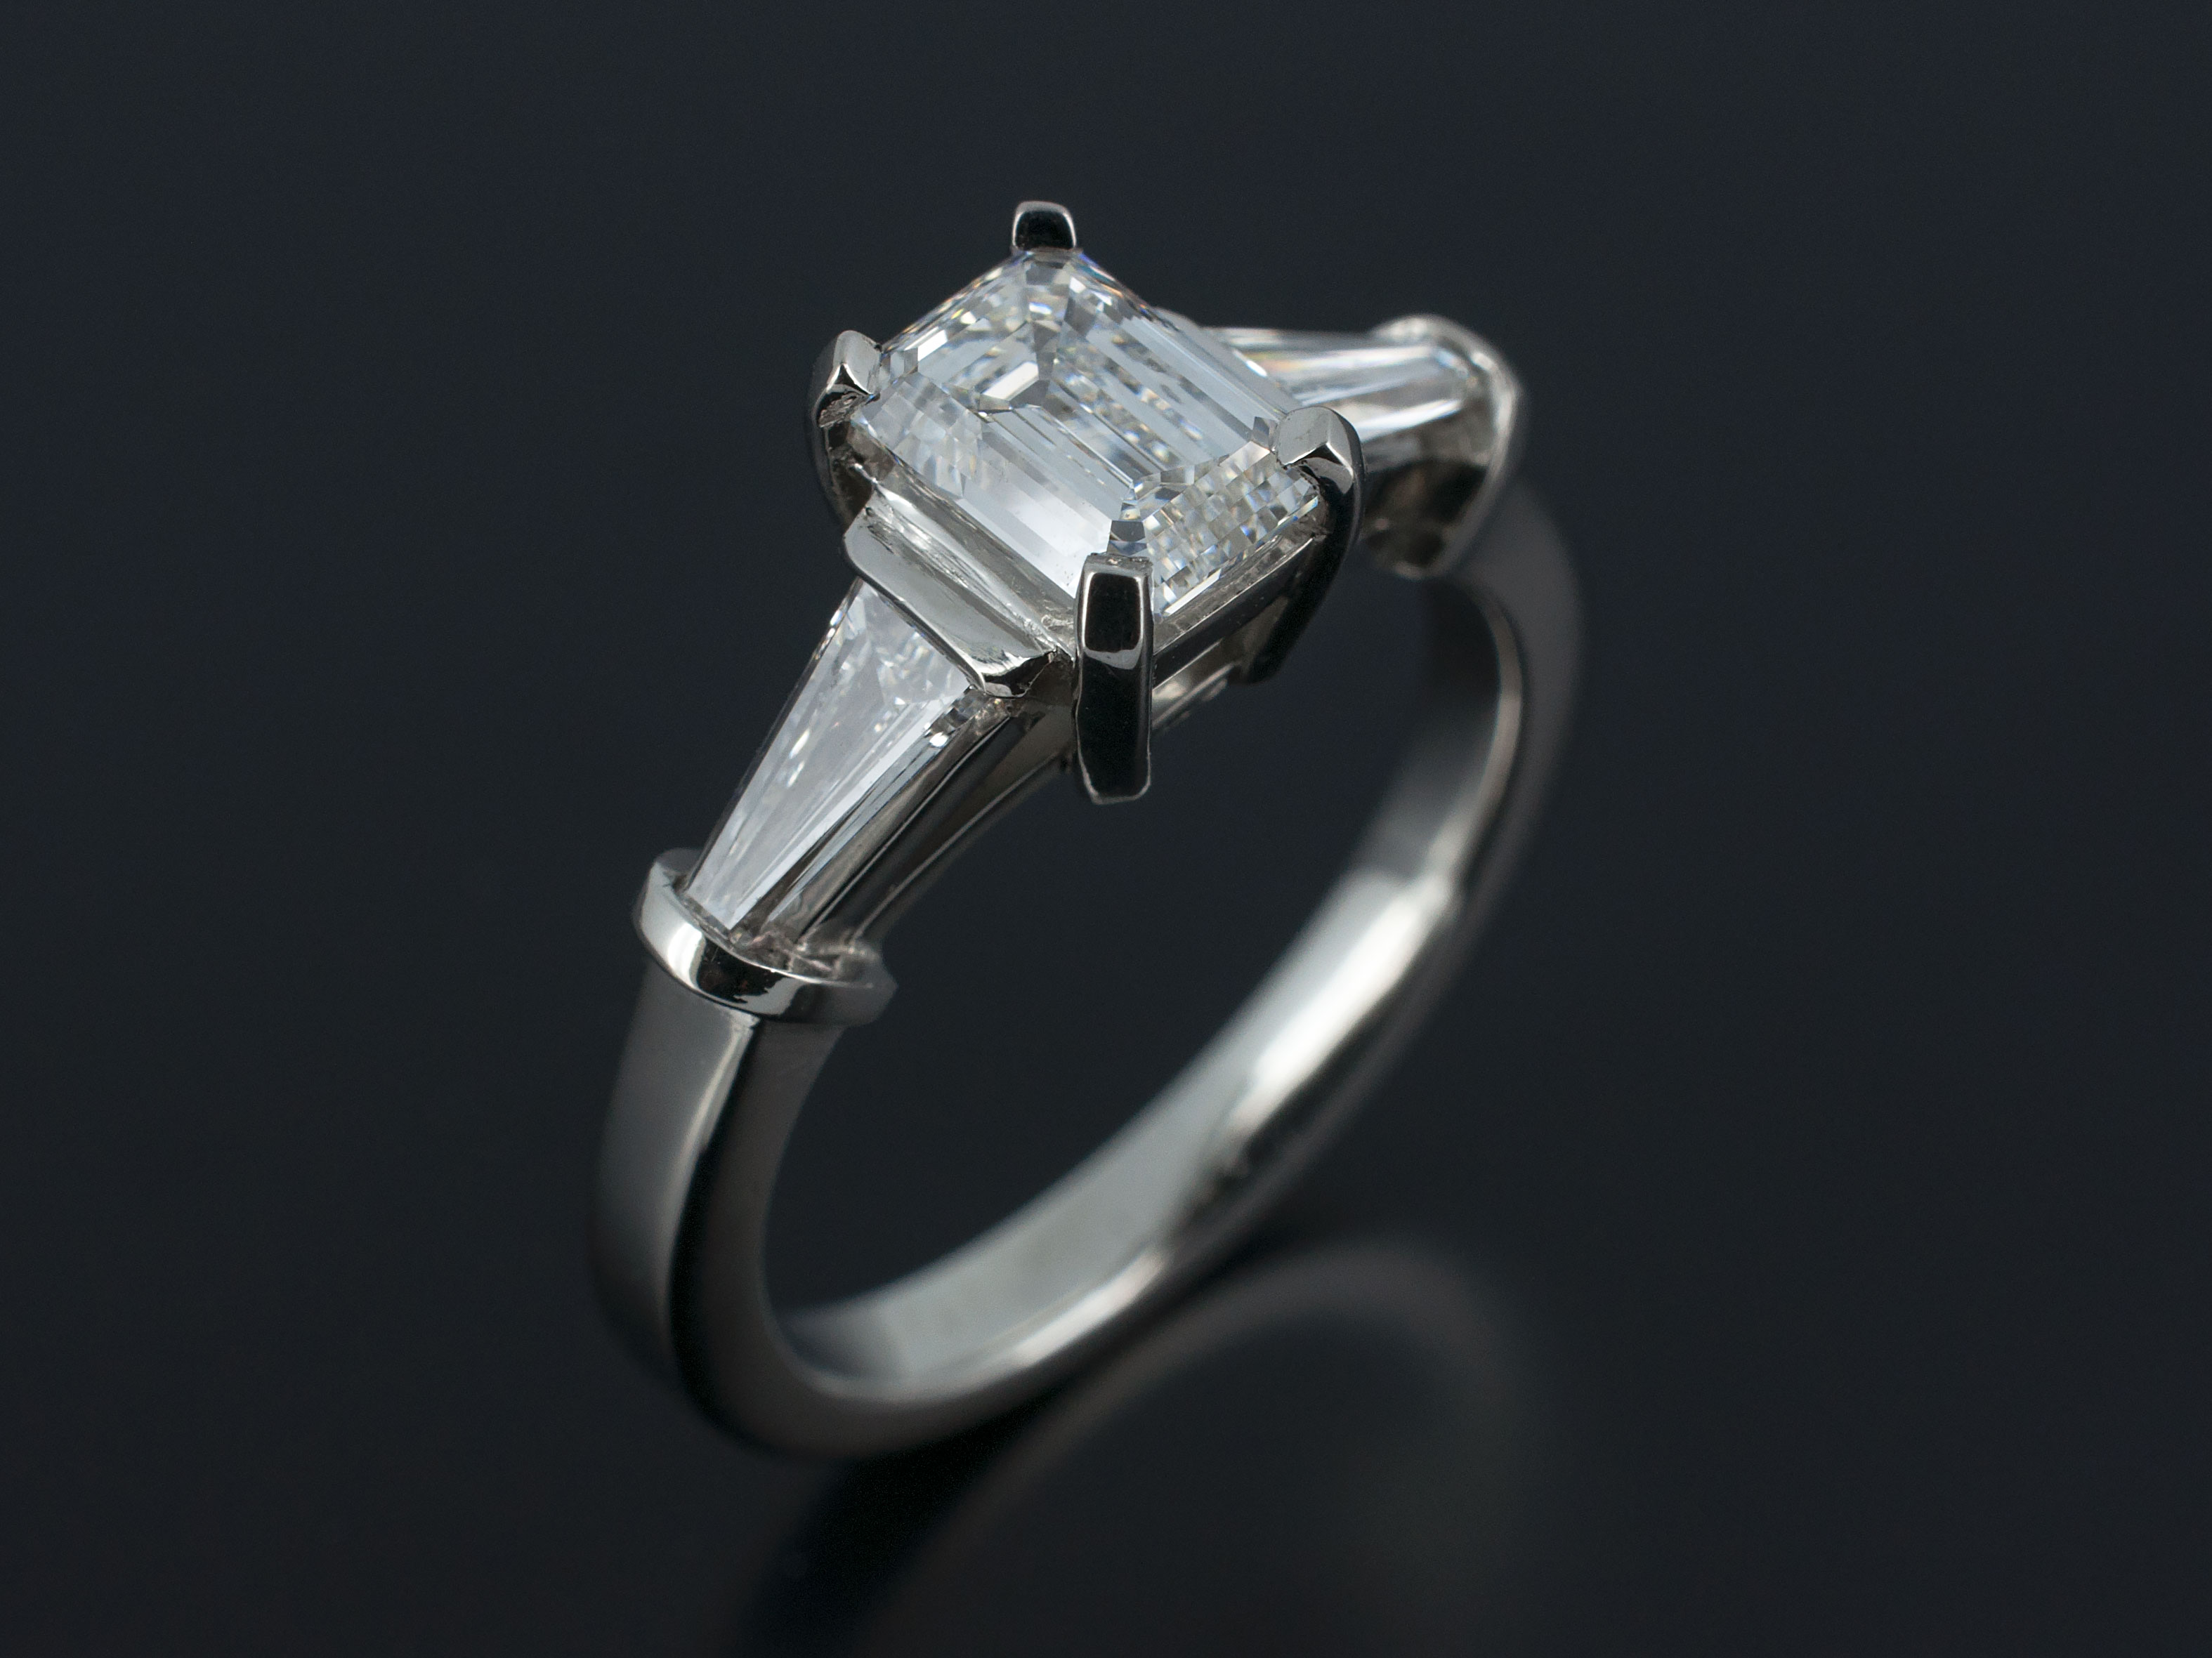 rings jewellery ring jean behind handmade design emerald cut designed thoughts bespoke a and are amy what engagement platinum gold